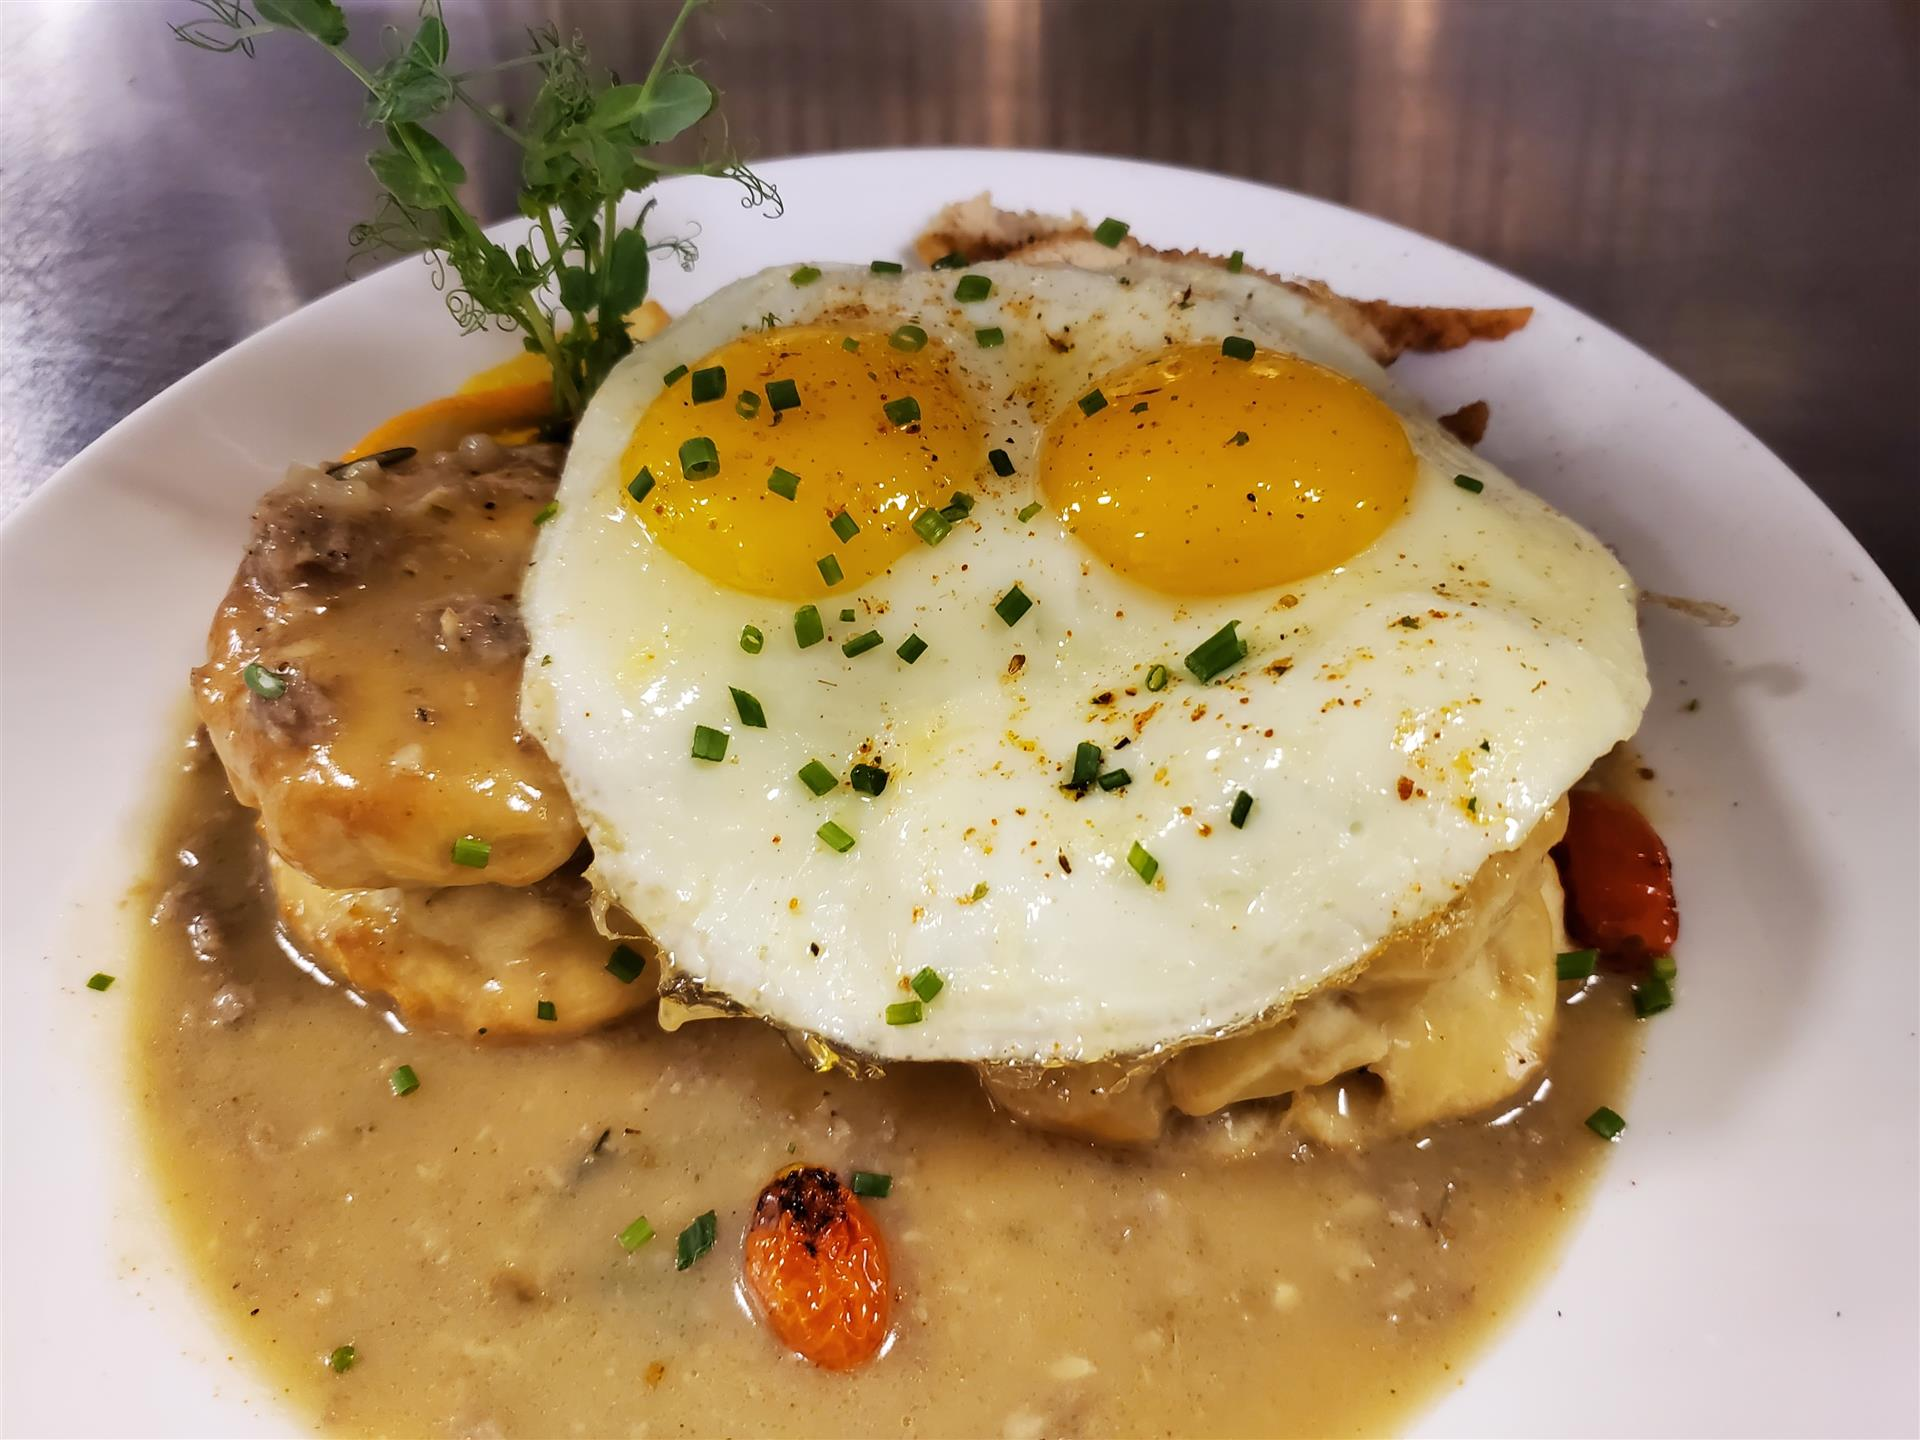 sunny side up eggs on chicken biscuits